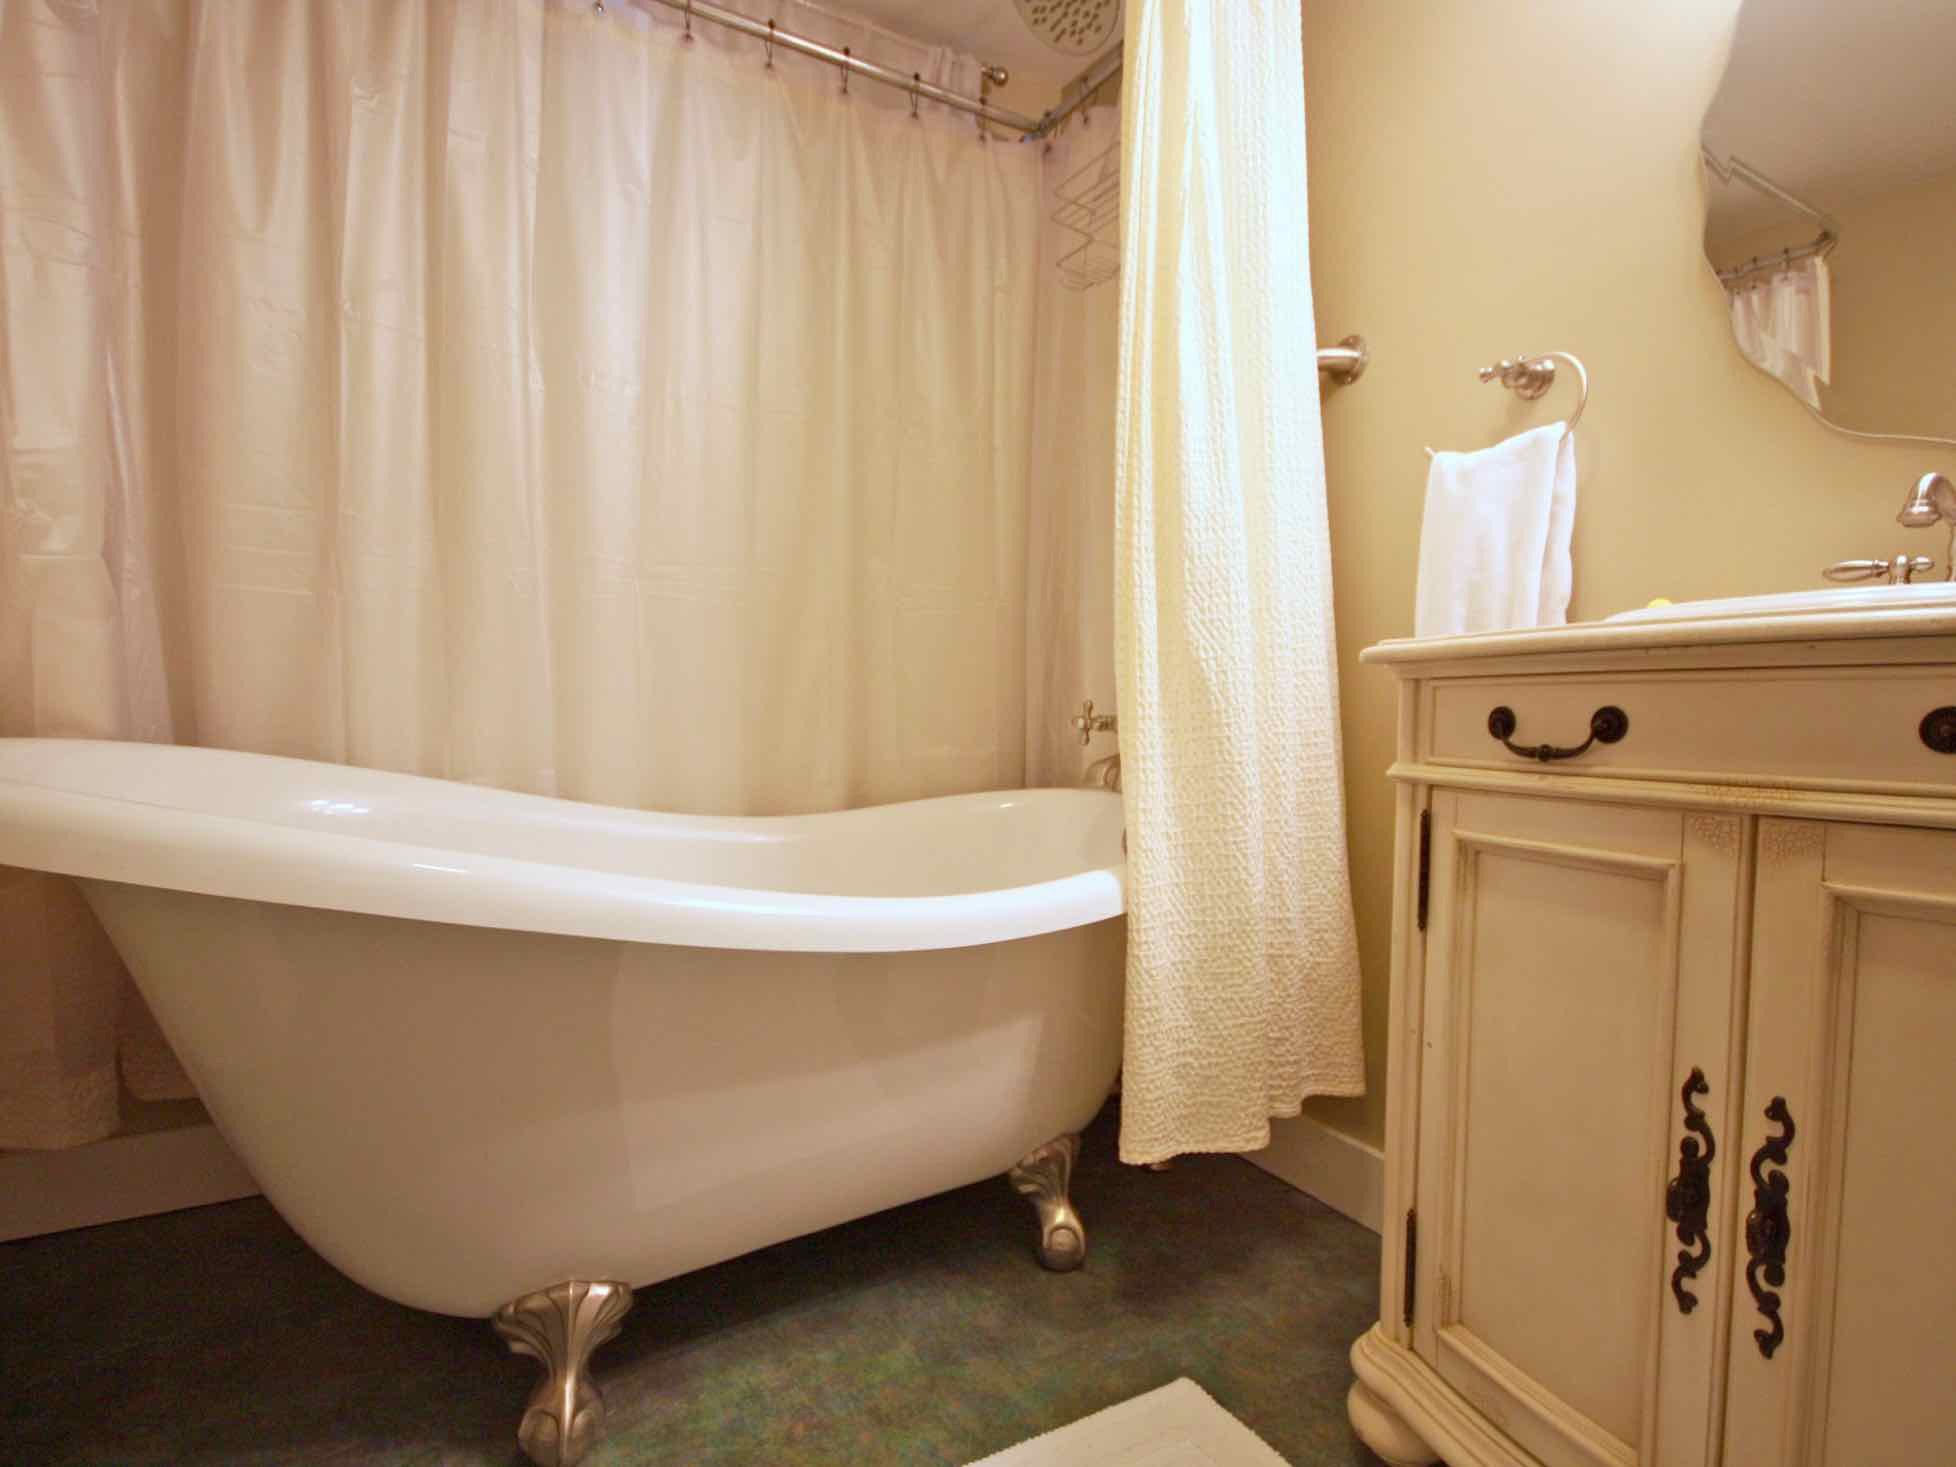 Acadia Suite - Claw-foot bathtub and bathroom at Coach Stop Inn